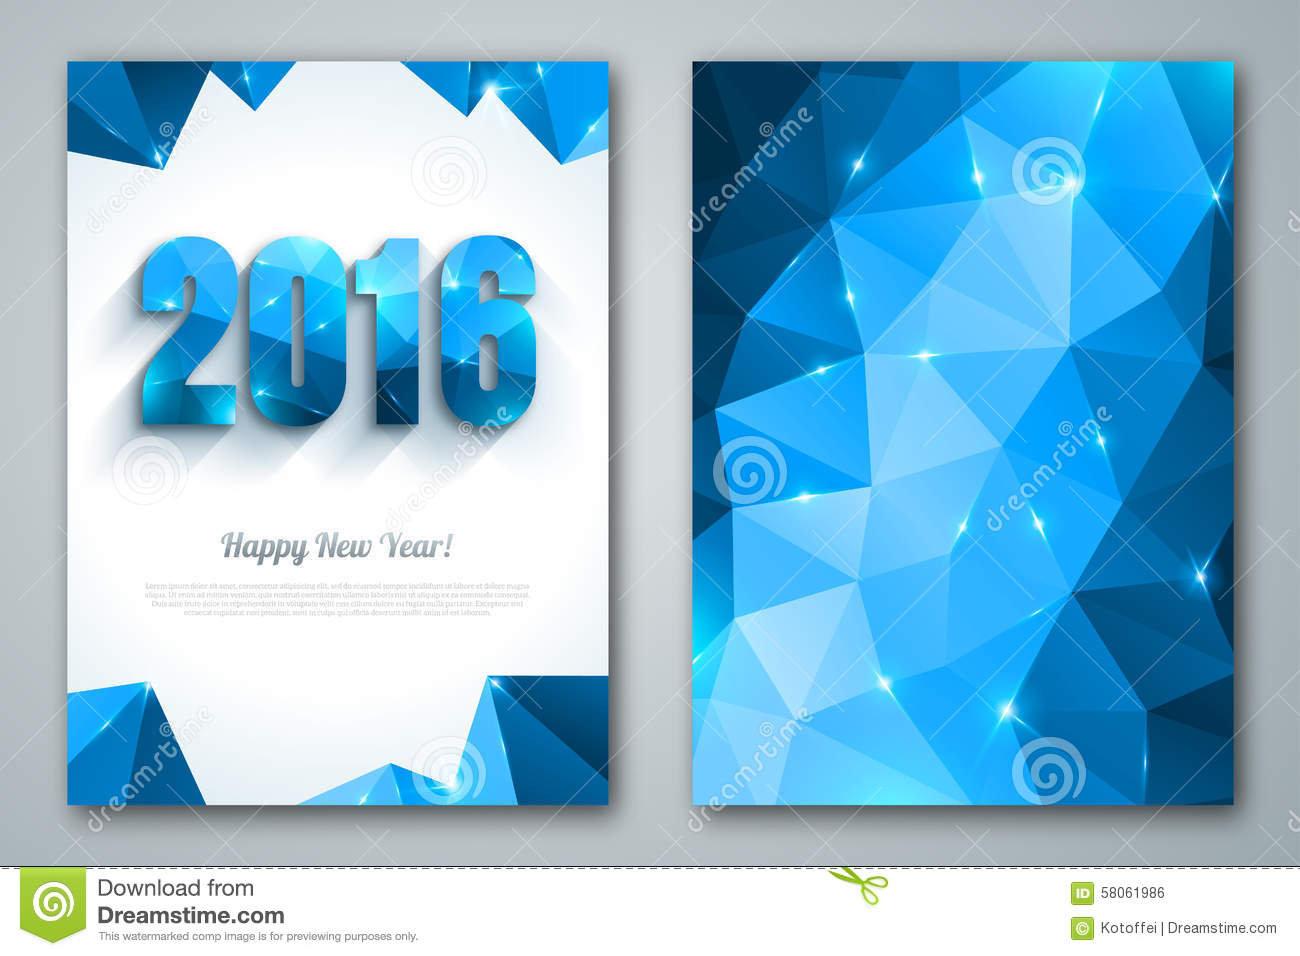 Poster design 2016 - Happy New Year 2016 Greeting Cards In Polygonal Royalty Free Stock Image